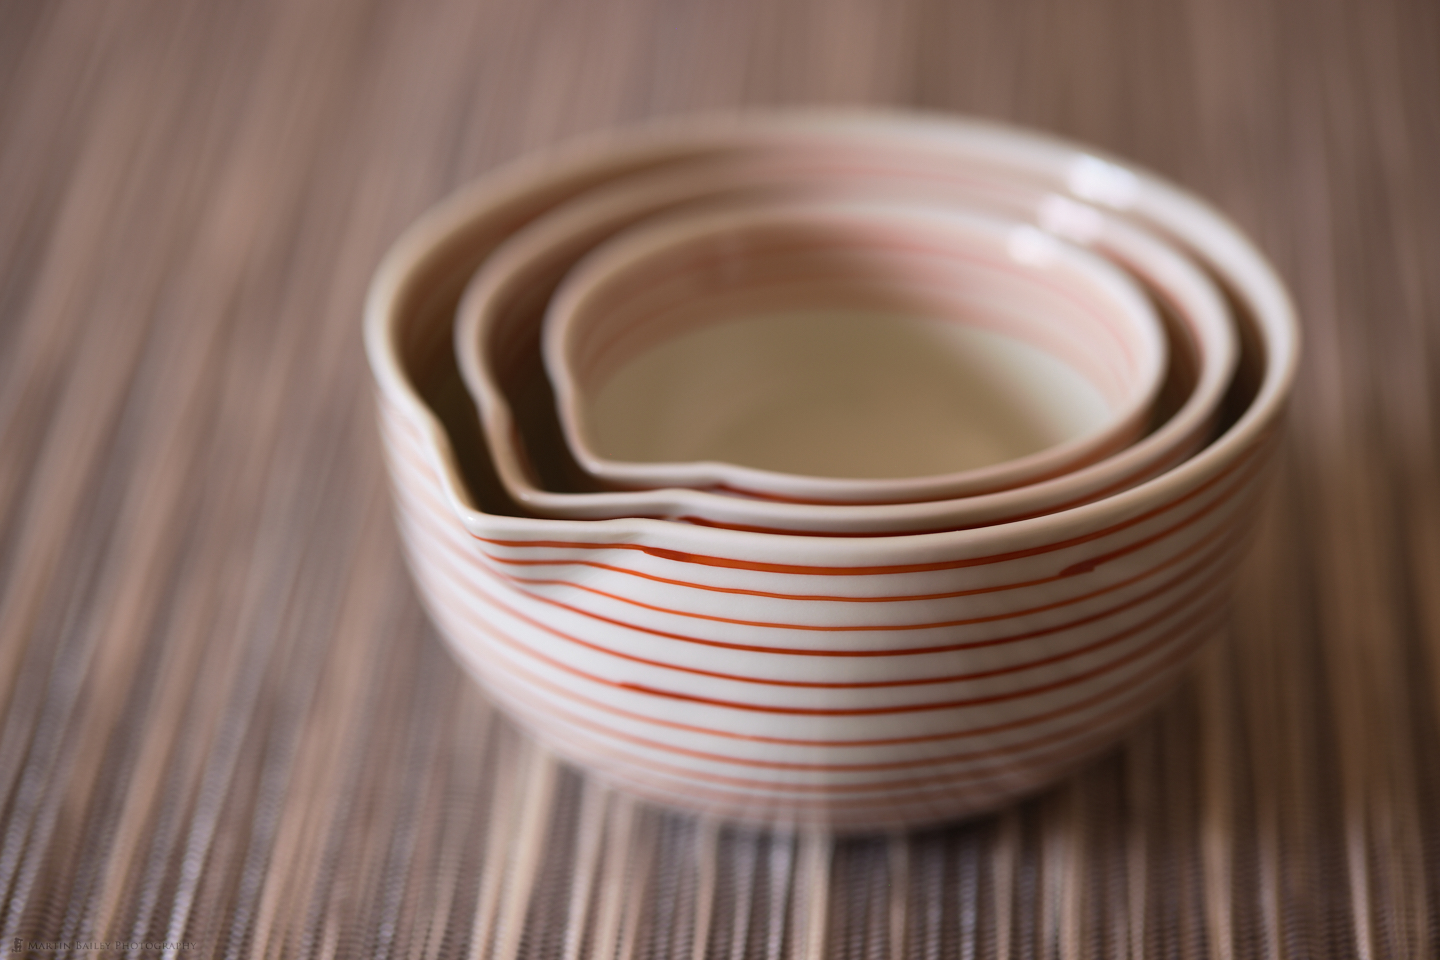 Nested Bowls